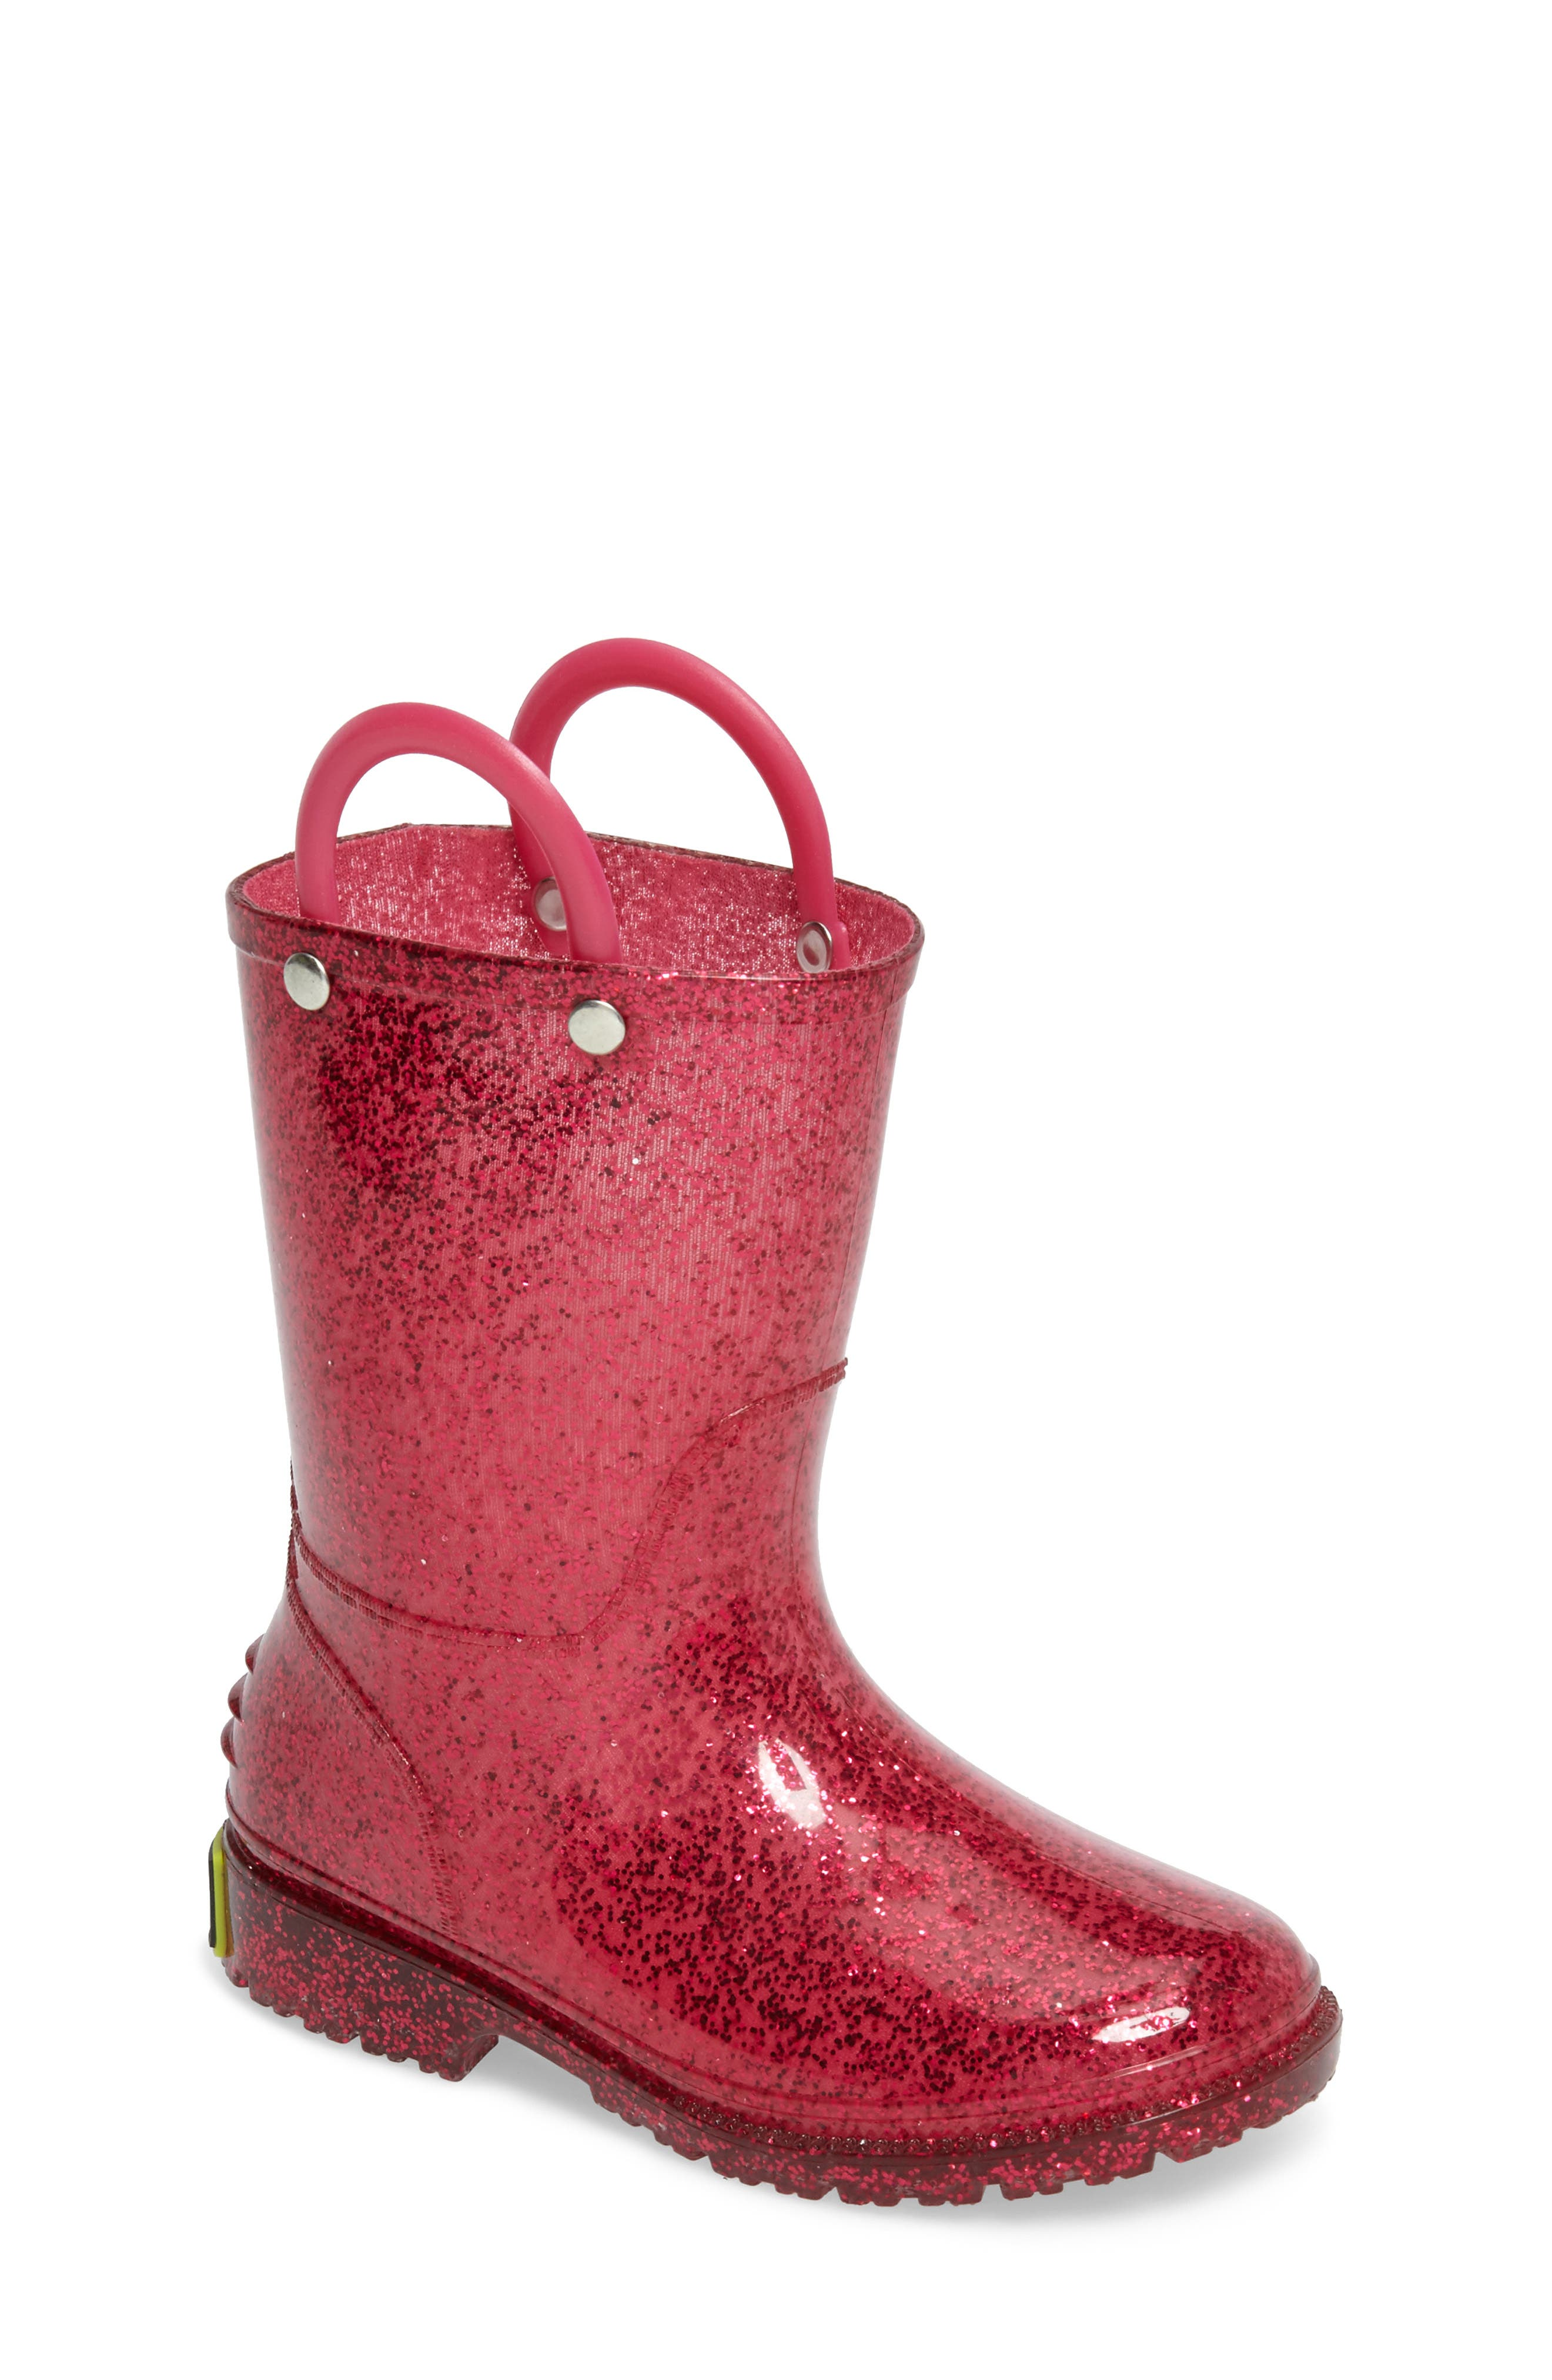 Alternate Image 1 Selected - Western Chief Glitter Rain Boot (Walker, Toddler & Little Kid)